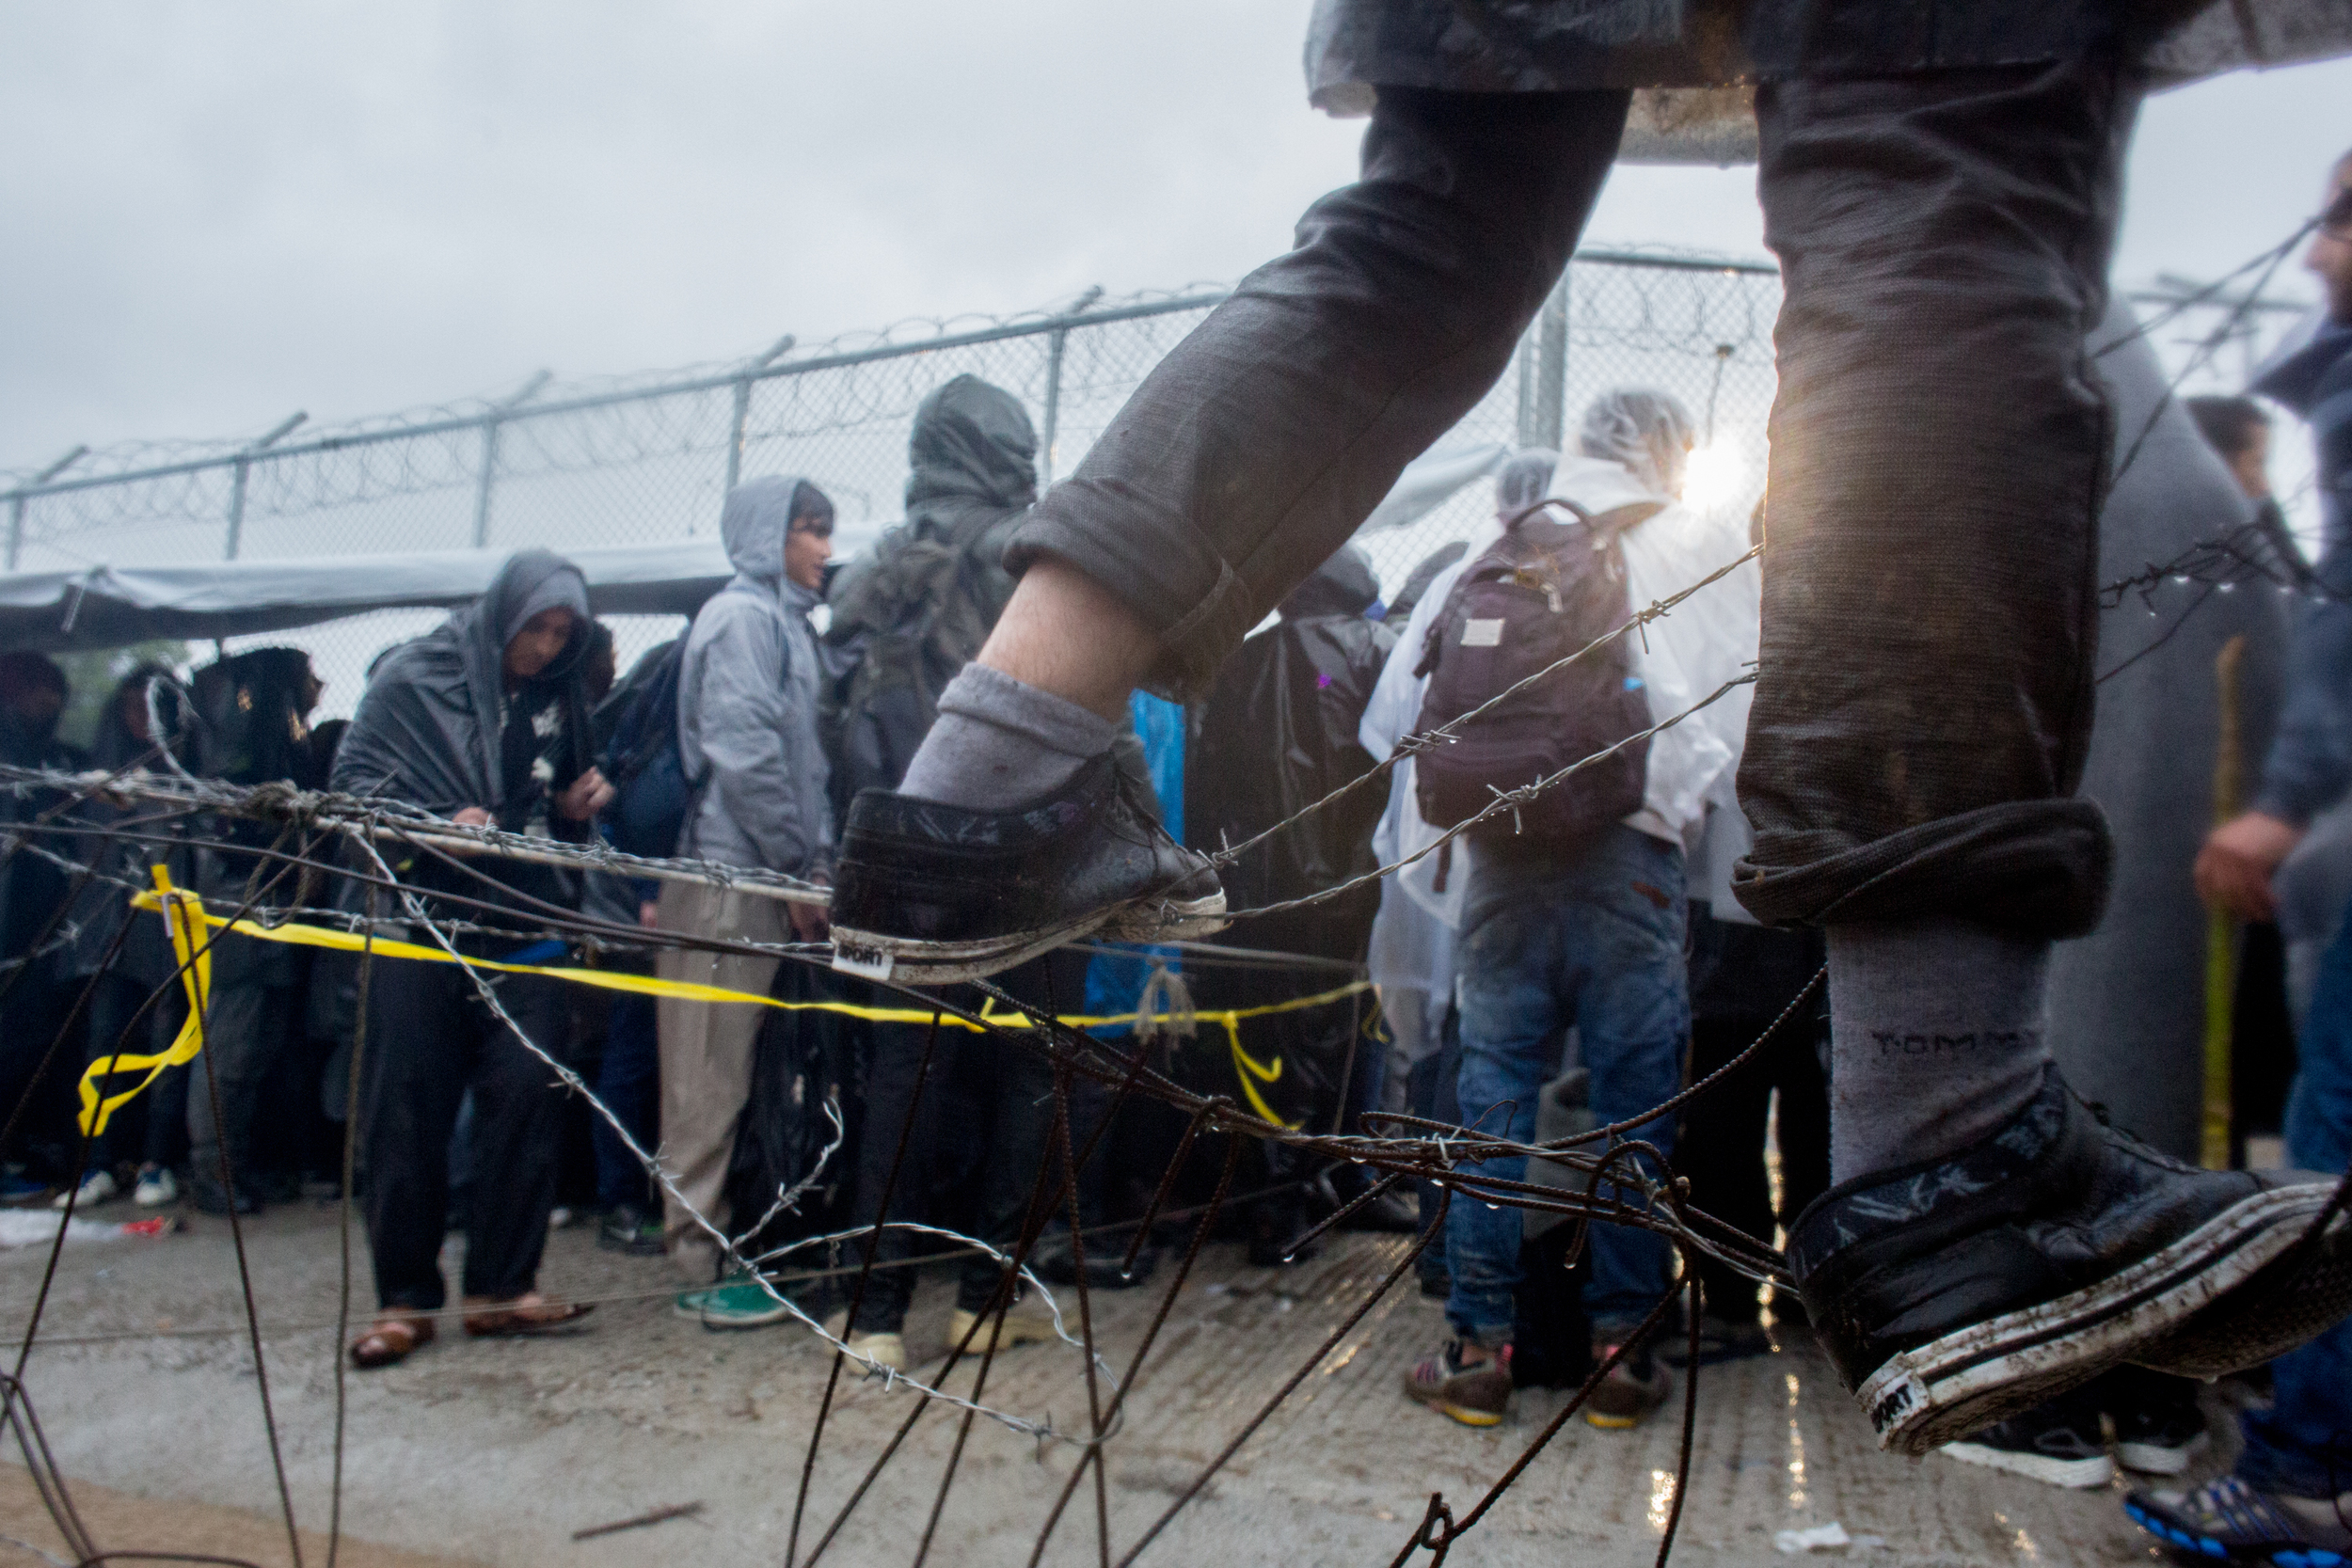 A boy stands on a fence to see over the crowds at the entrance of the Moria registration camp on Lesvos during a rainstorm. The registration process is in constant flux as Greek authorities try to deal with the large amounts of refugees arriving on the island. However, the priority is for registering families and those with proper identification papers. Single men were placed in a separate registration line. Some men said they had been waiting to be registered for three or four days.